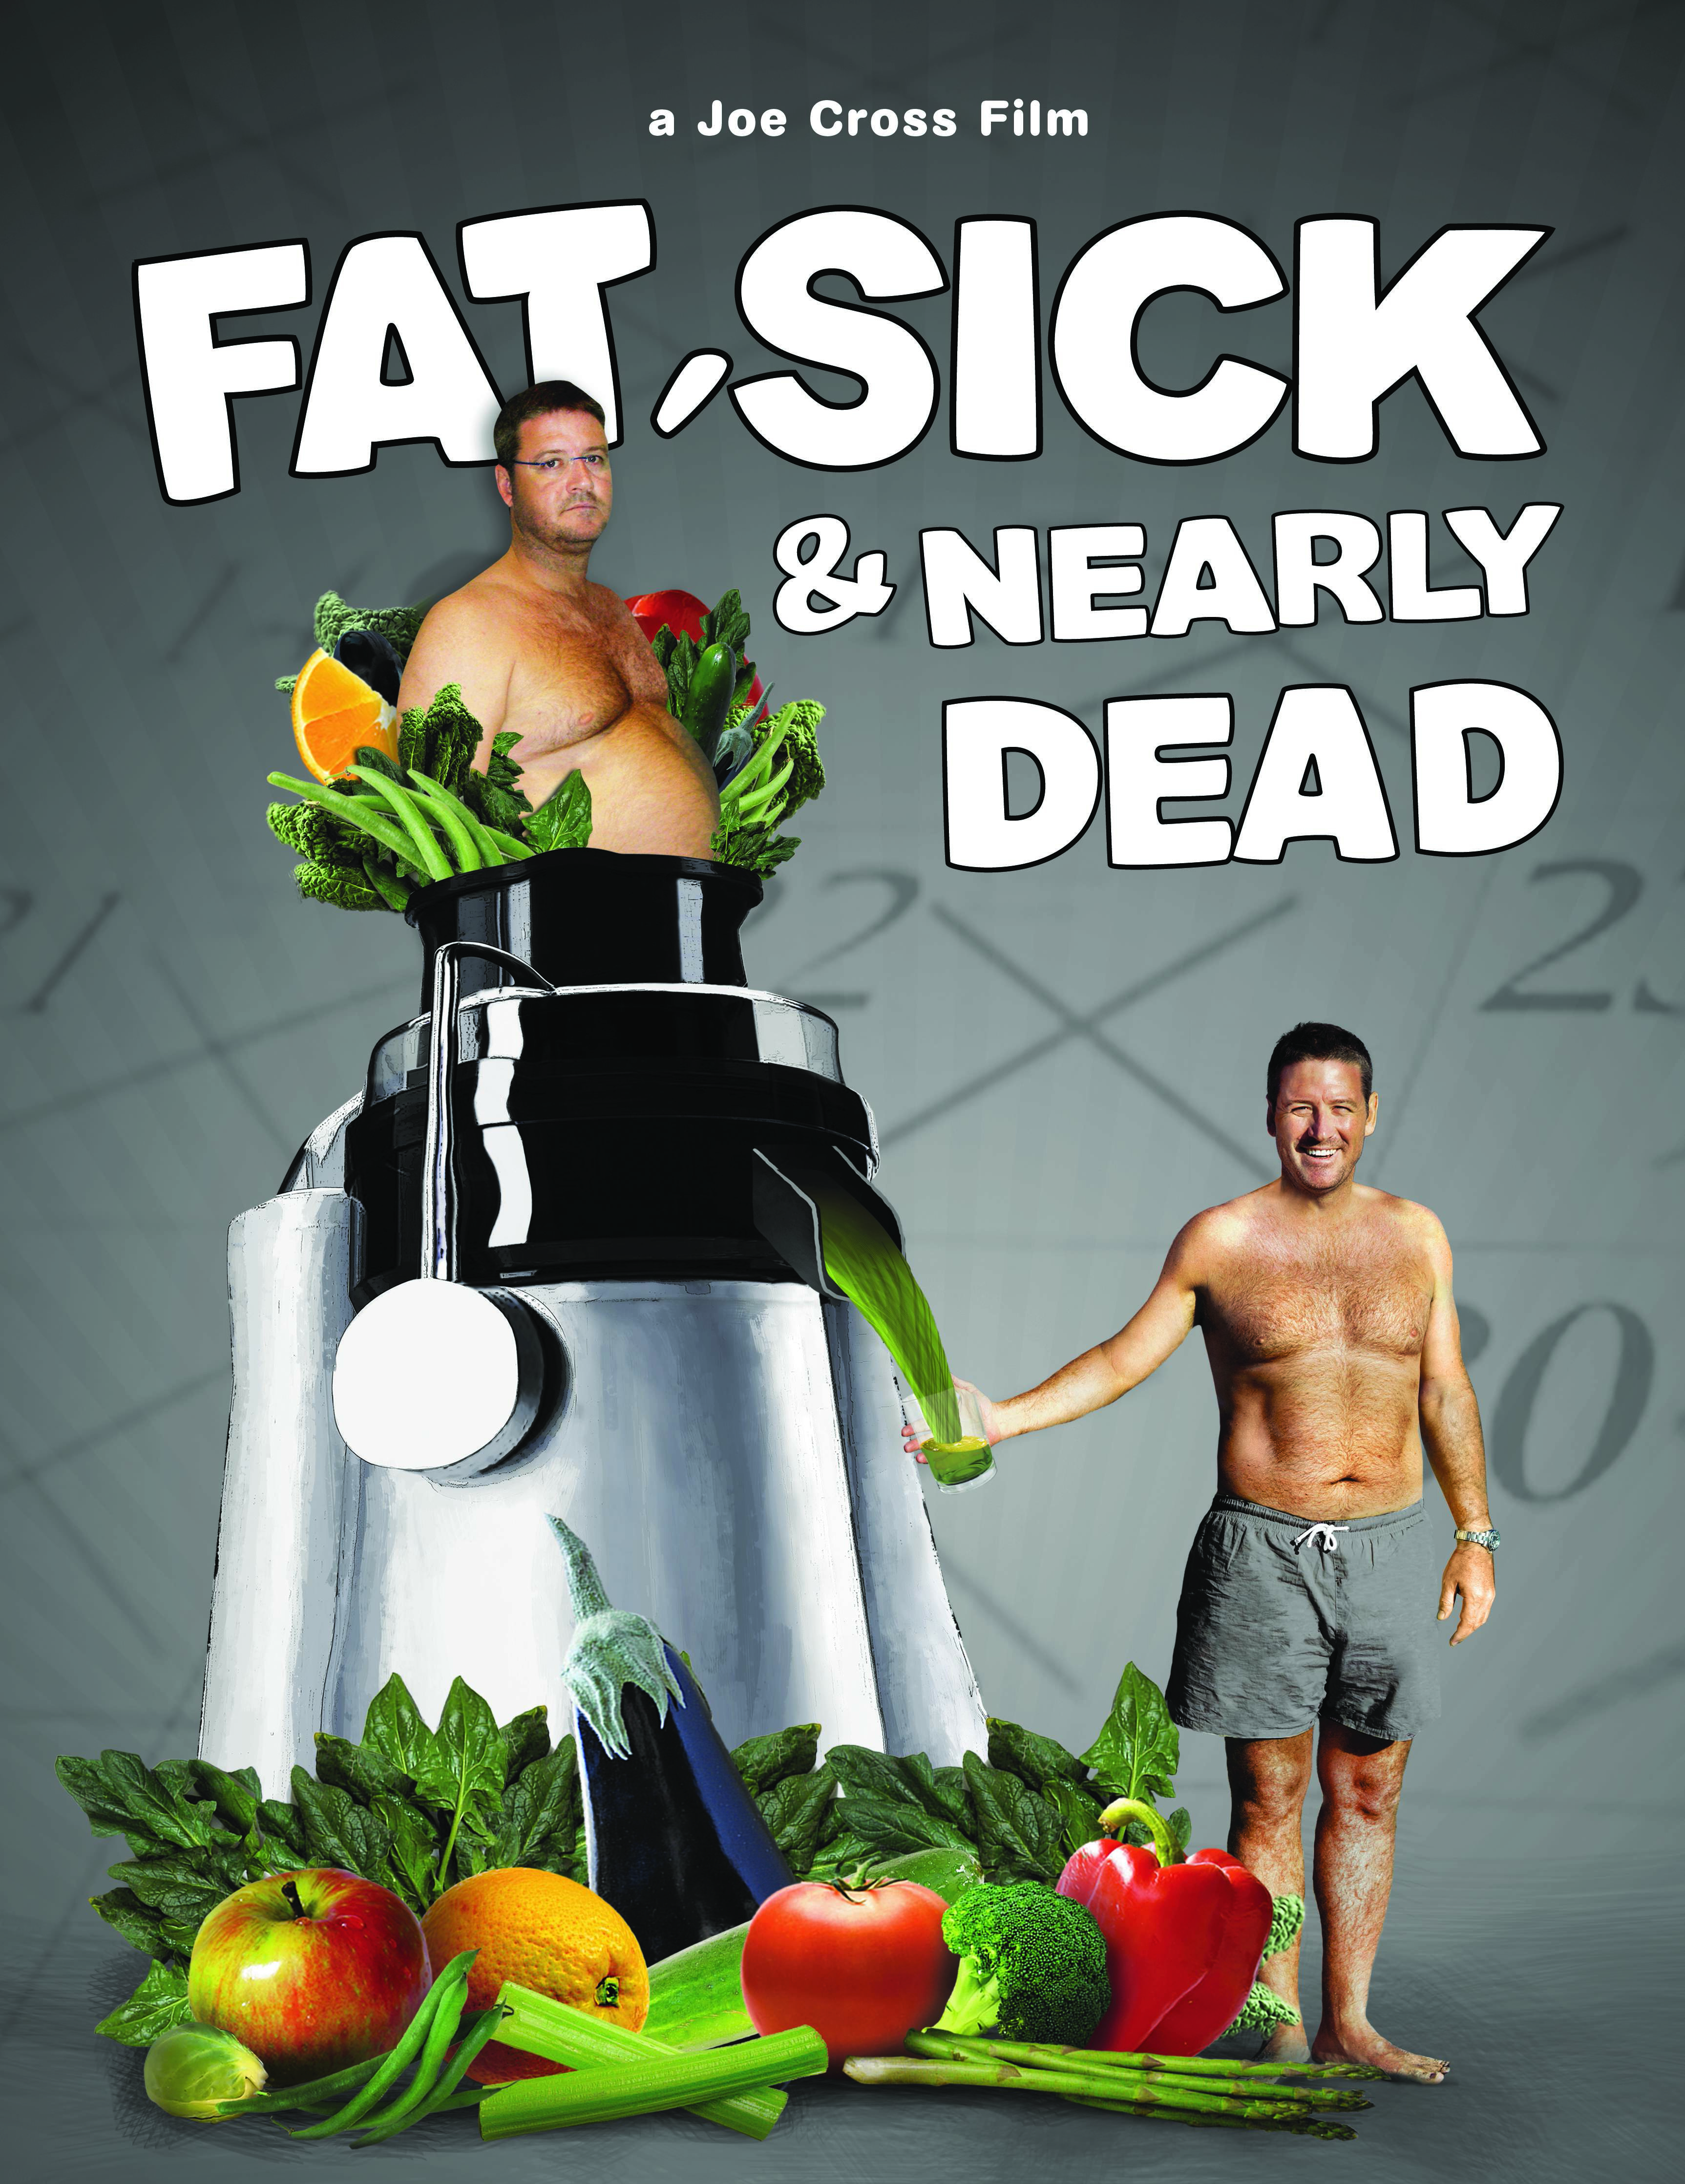 Fat-Sick-Nearly-Dead-Featured